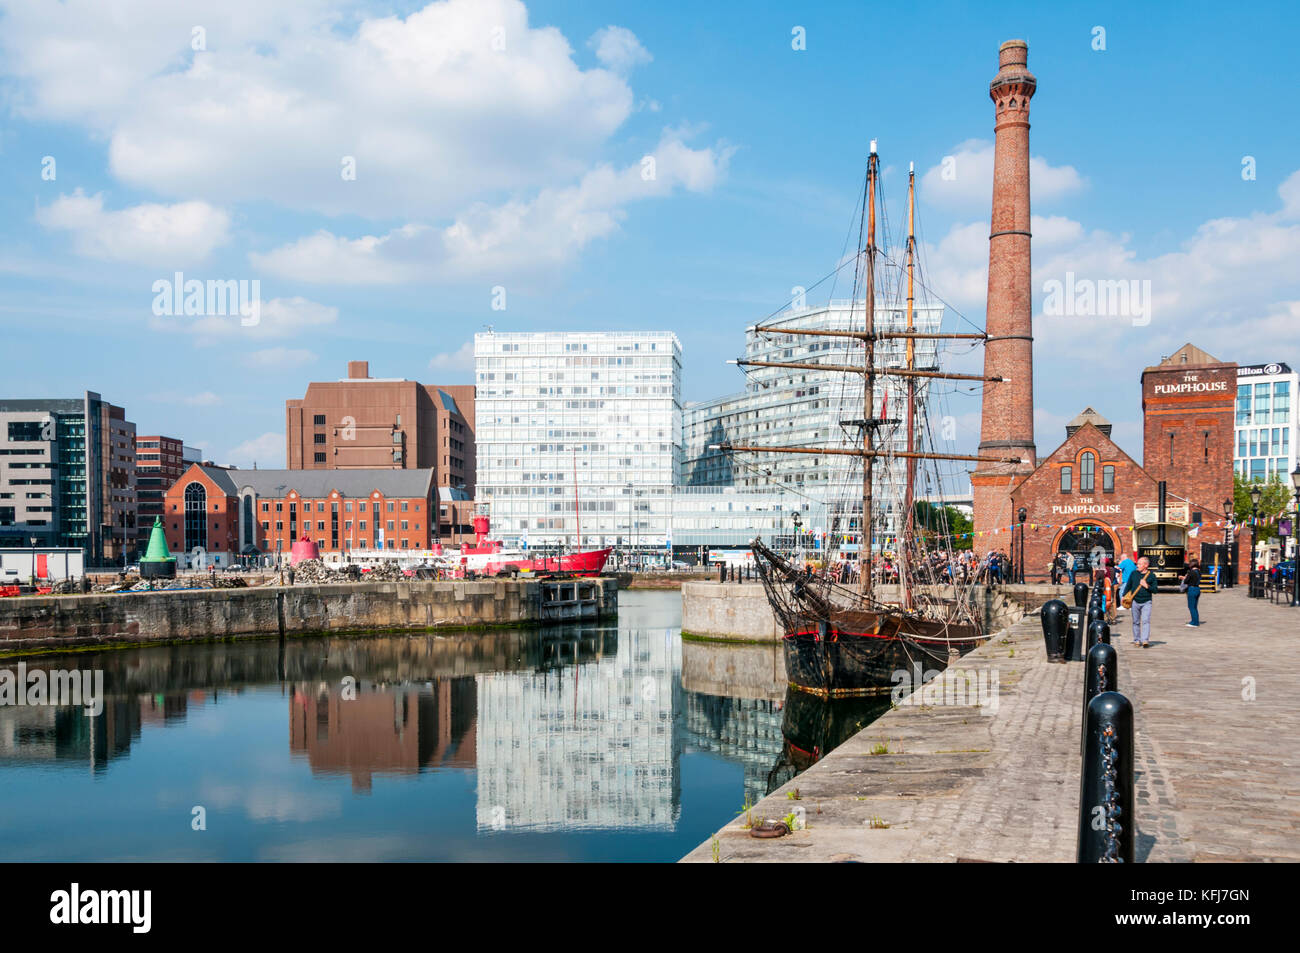 The Canning Dock with restored historic tall ship Zebu and The Pump House public house in Liverpools restored docklands. - Stock Image